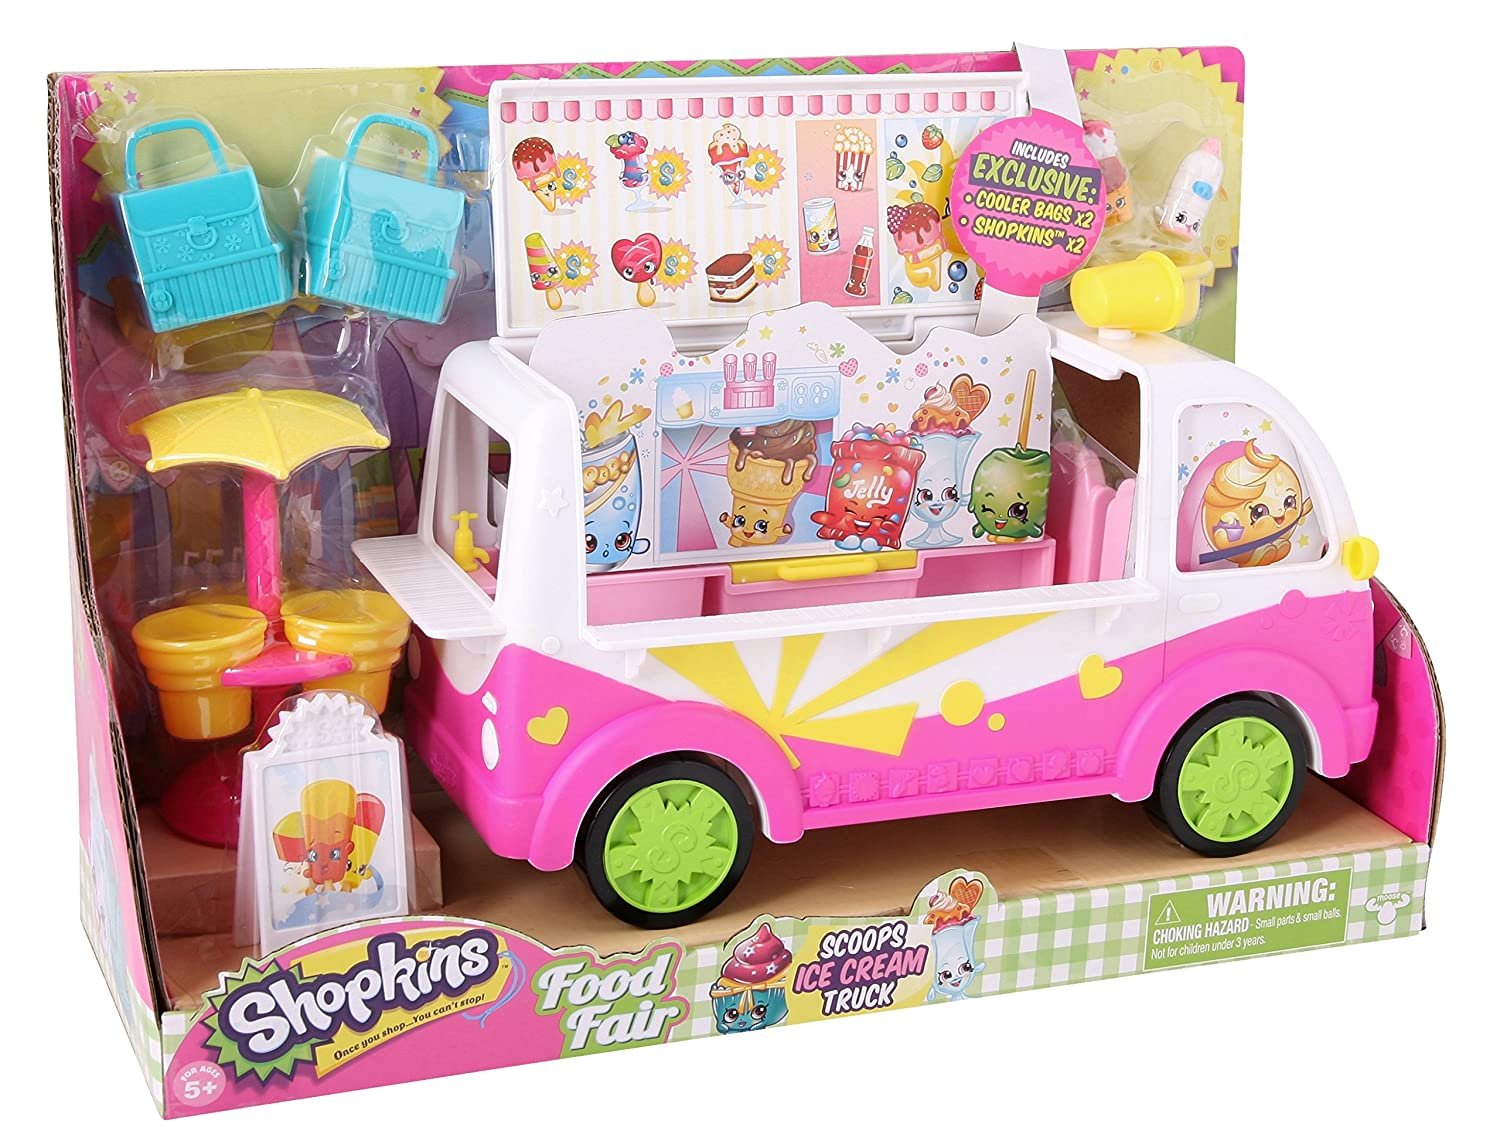 Top 9 Best Shopkins Toys Reviews in 2020 4